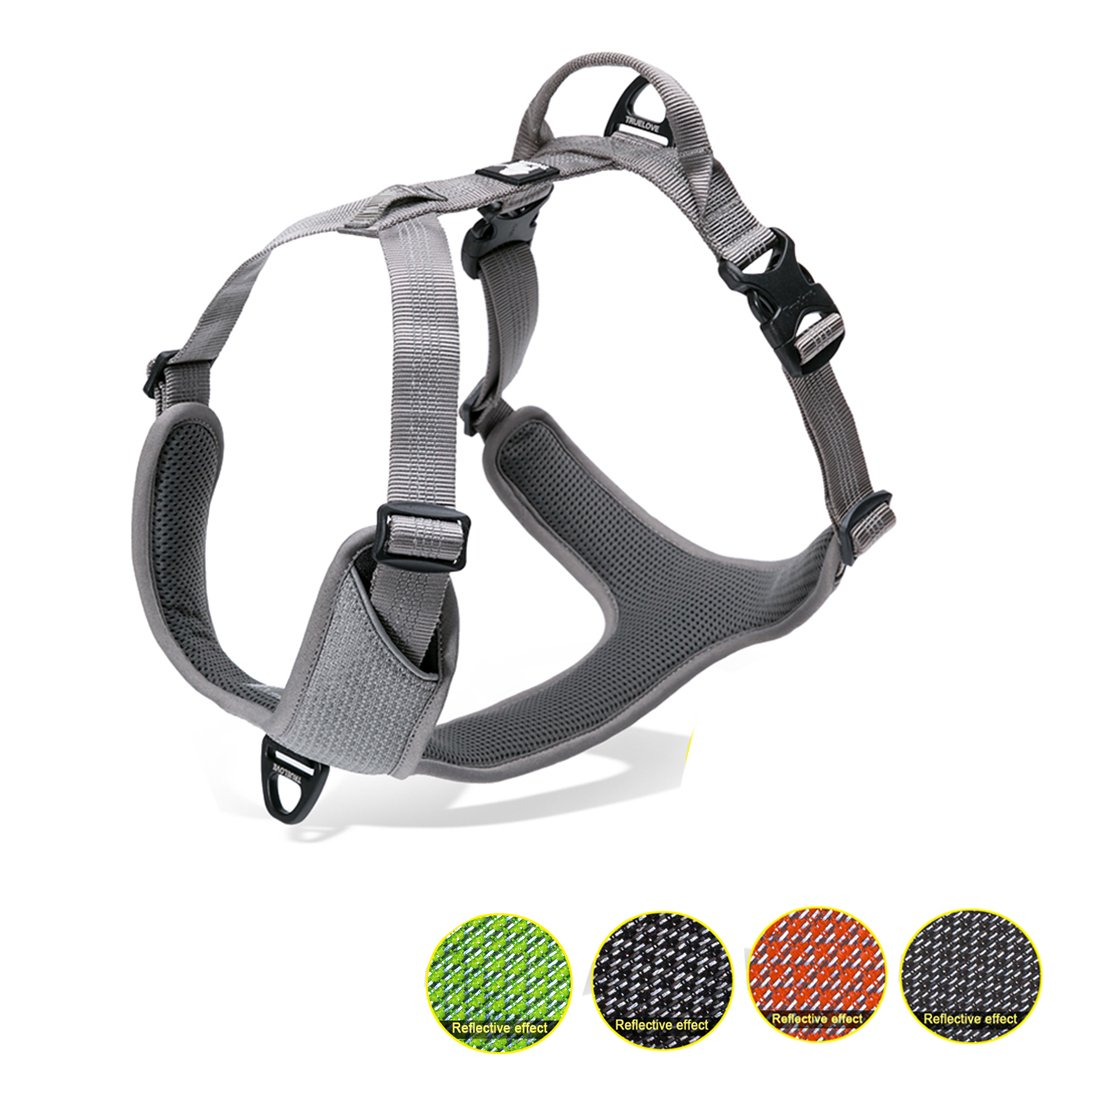 Kaka mall Dogs Vest Harness Front and Back Leading No Pull Padded 3M Reflective for Large Dogs for Outdoor Travel Walking Camping (Grey, XL)